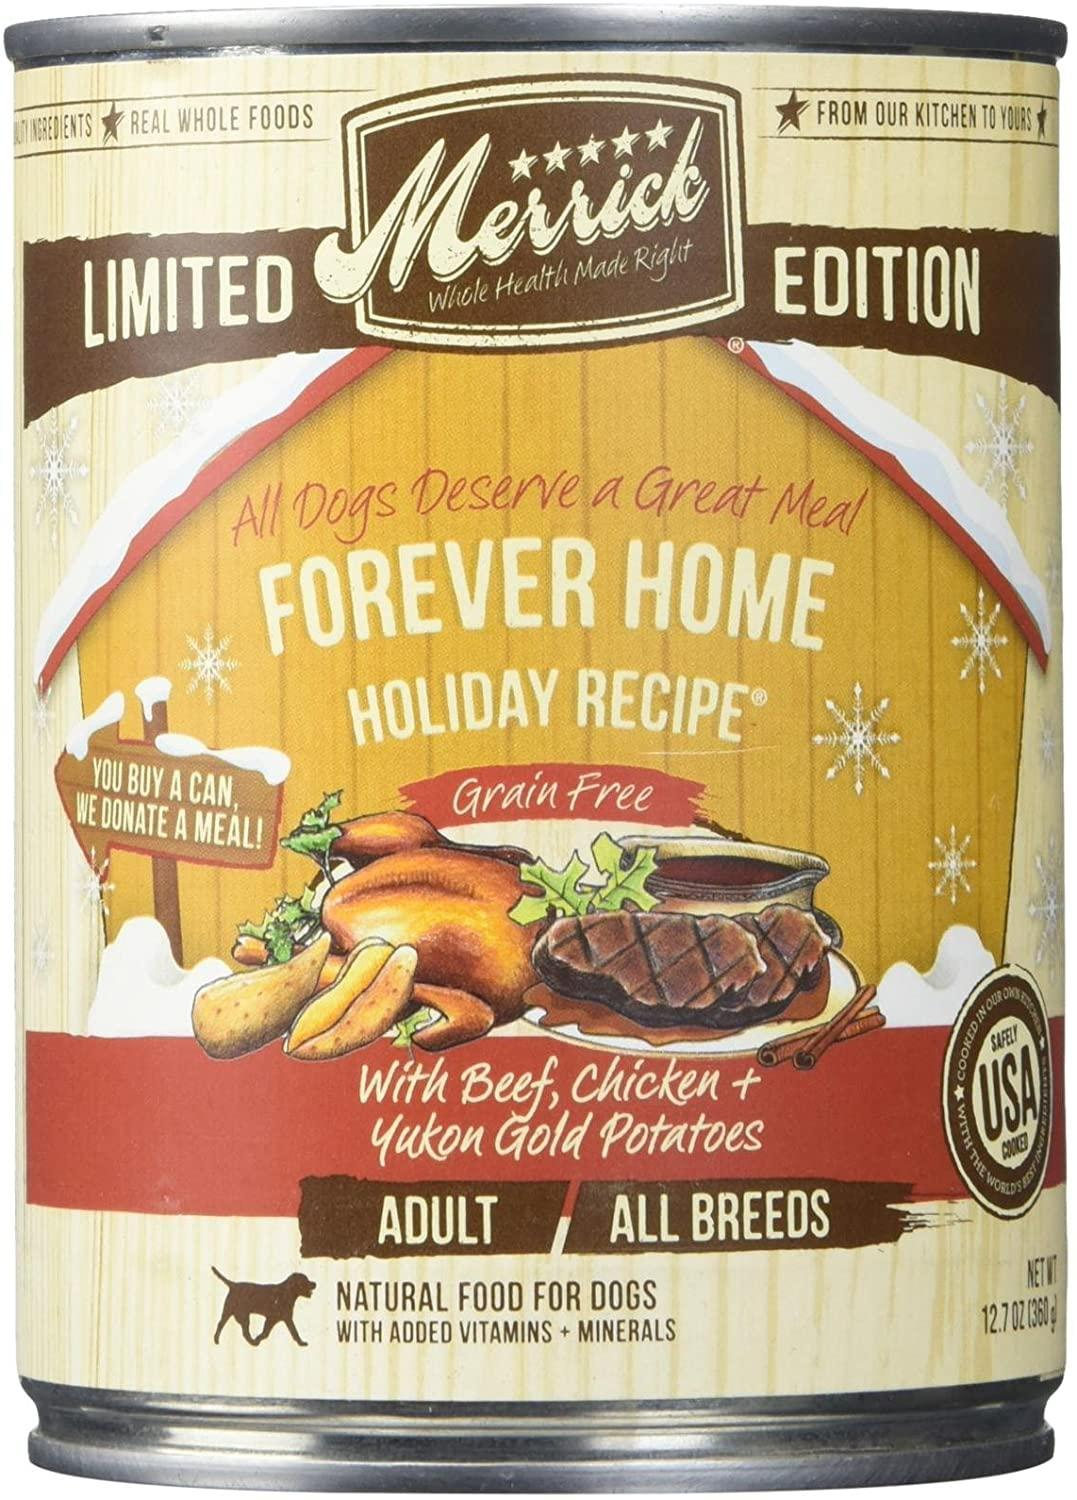 Merrick Limited Edition Forever Home Holiday Recipe Wet Dog Food, 12.7 oz